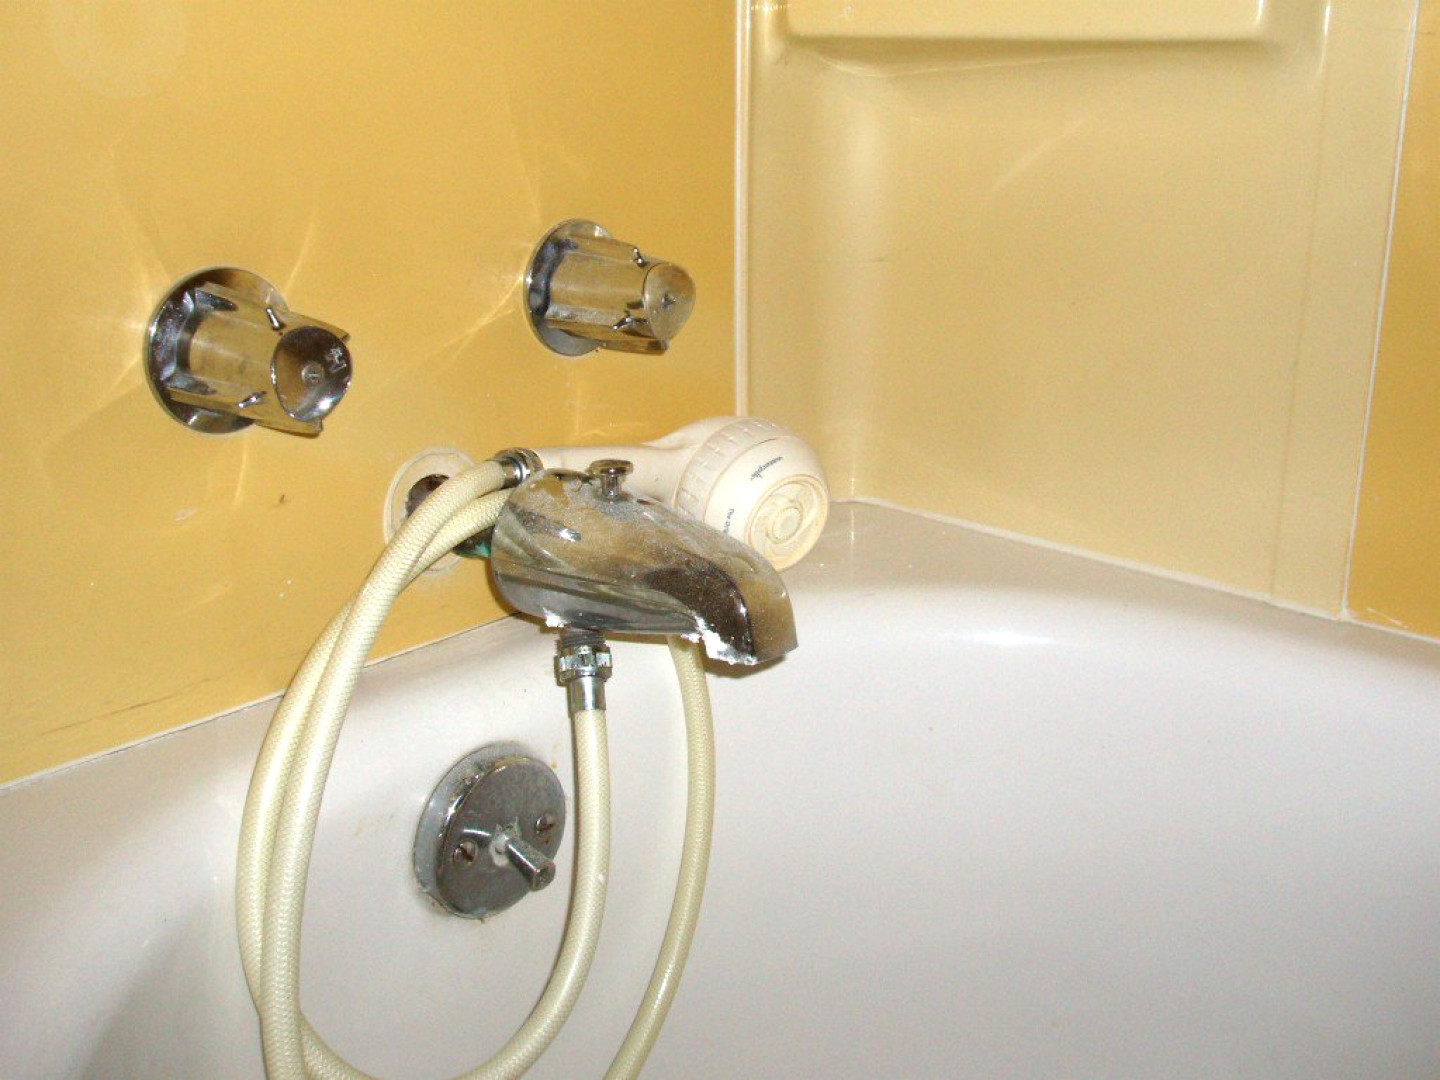 Portable Tub Spout Shower Head - Shower Ideas